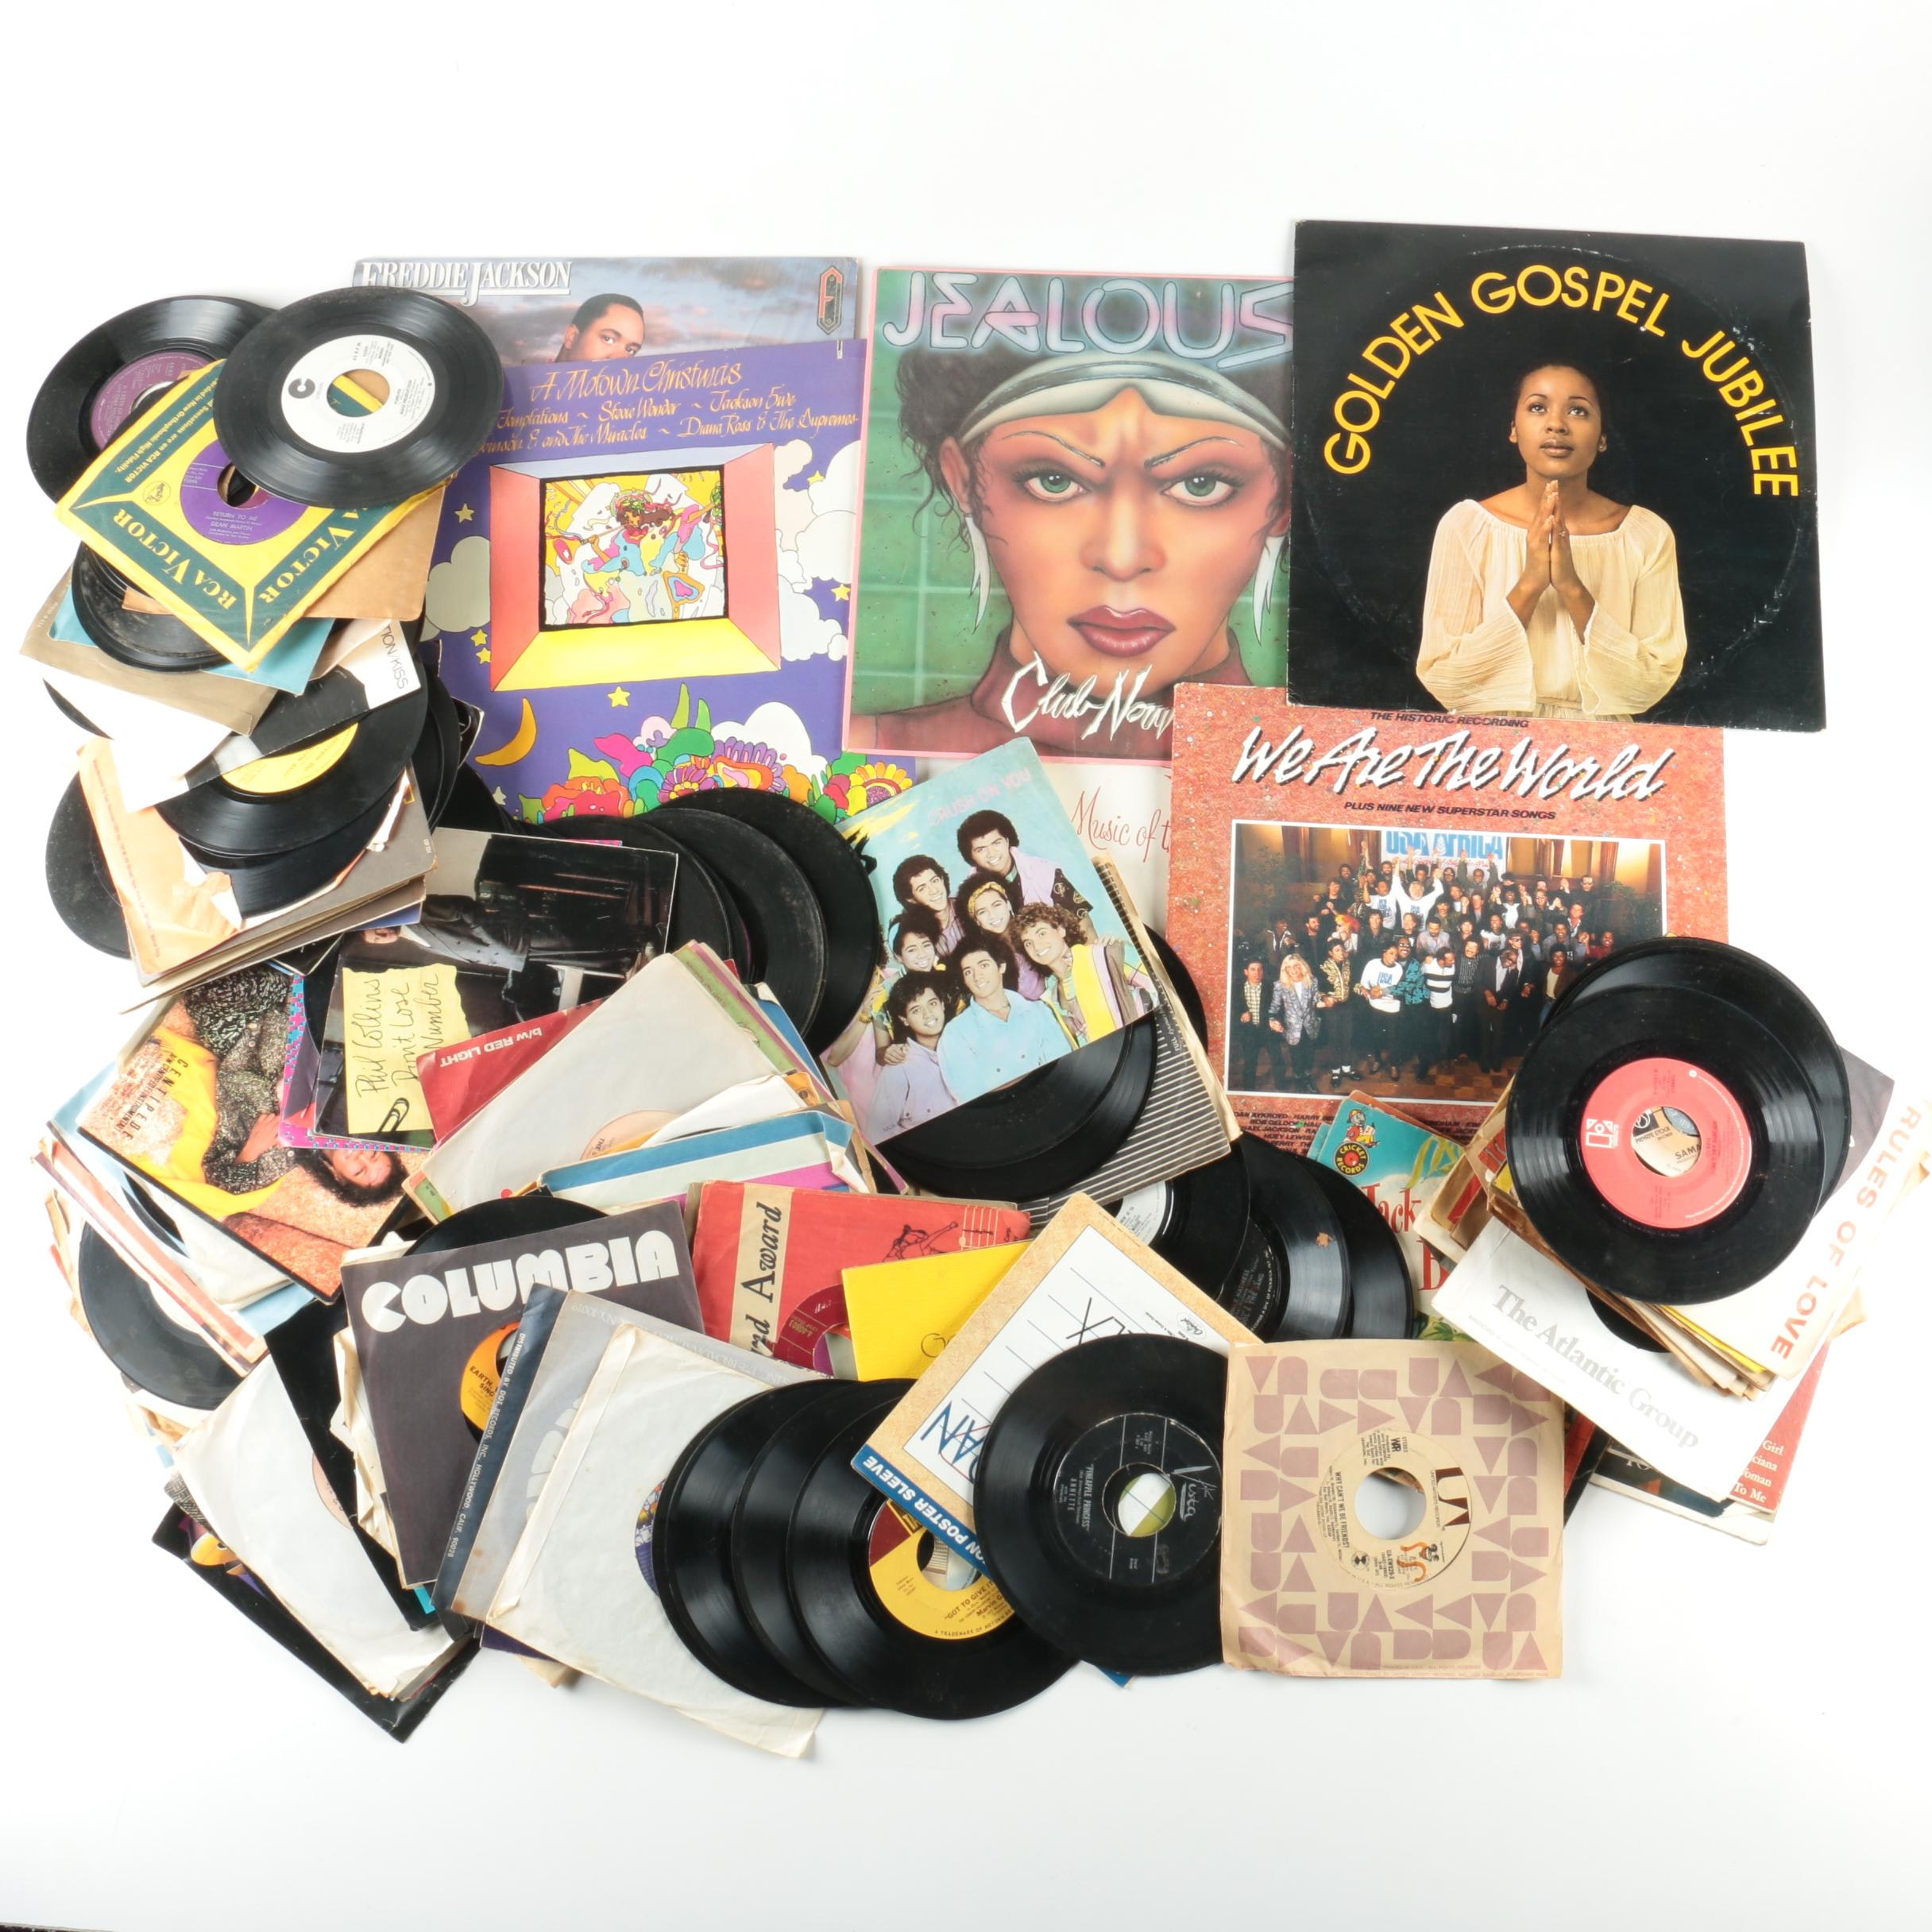 Prince, Aretha Franklin, Other Motown and Soul Records